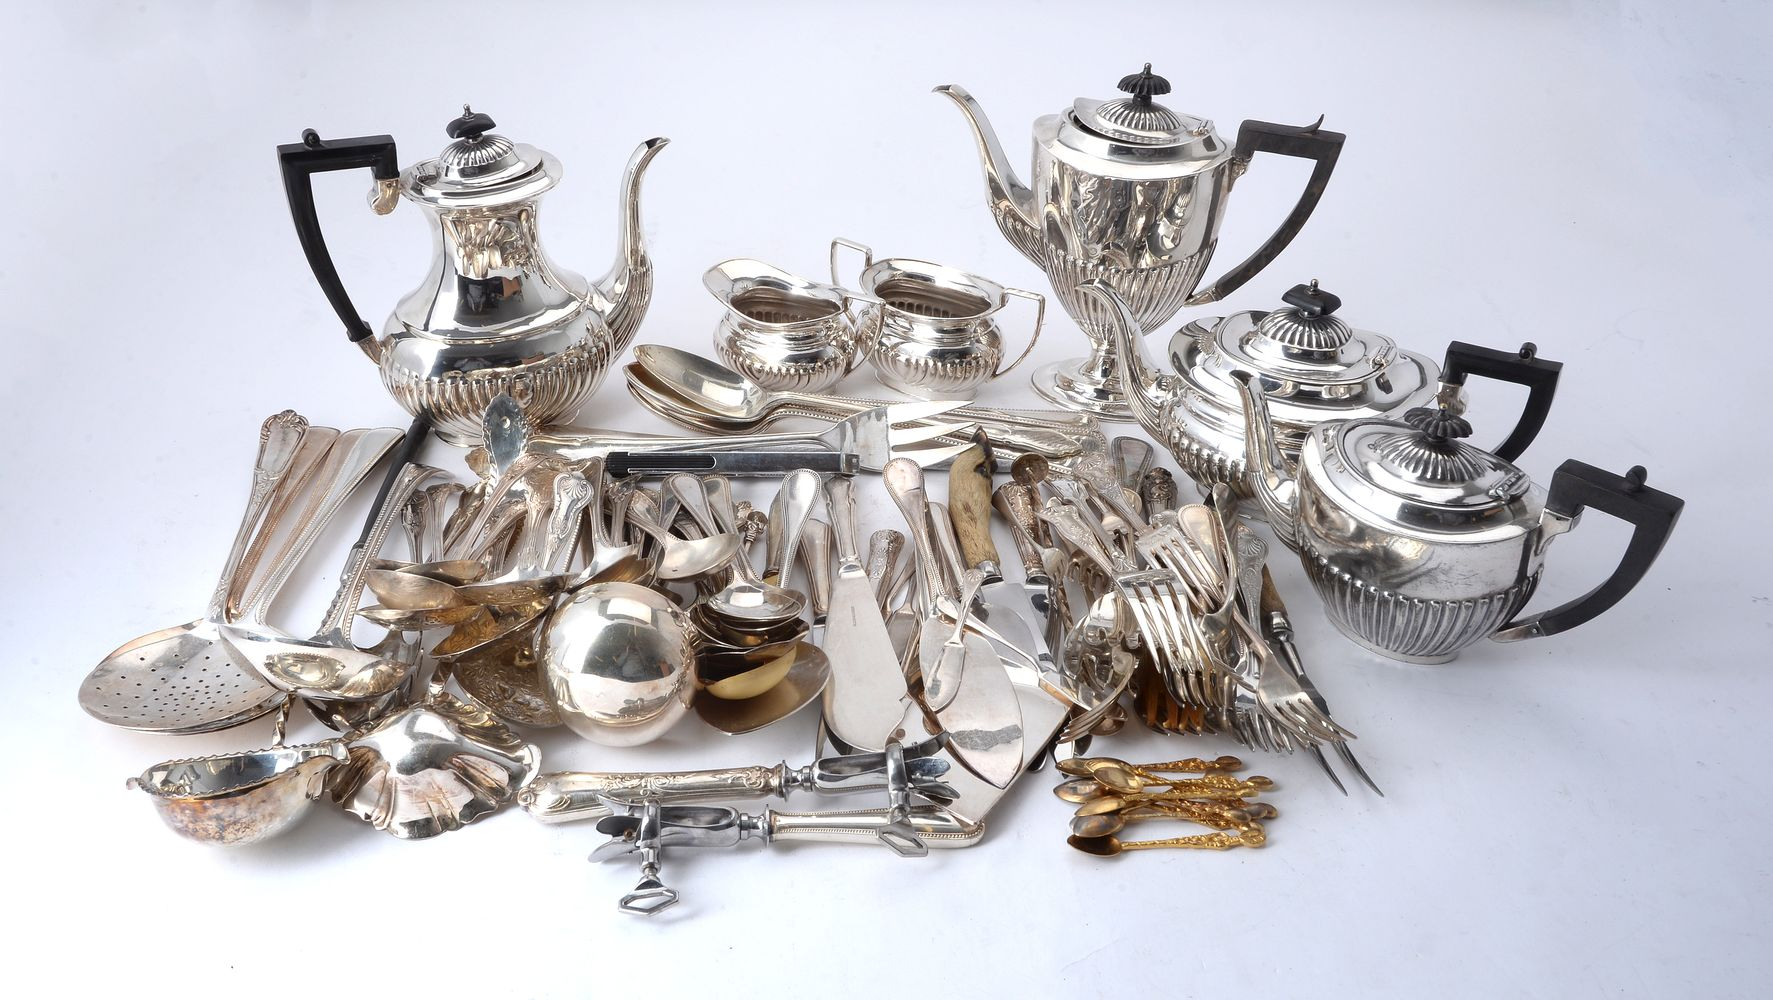 Lot 704 - A quantity of electro-plated flatware and serving pieces